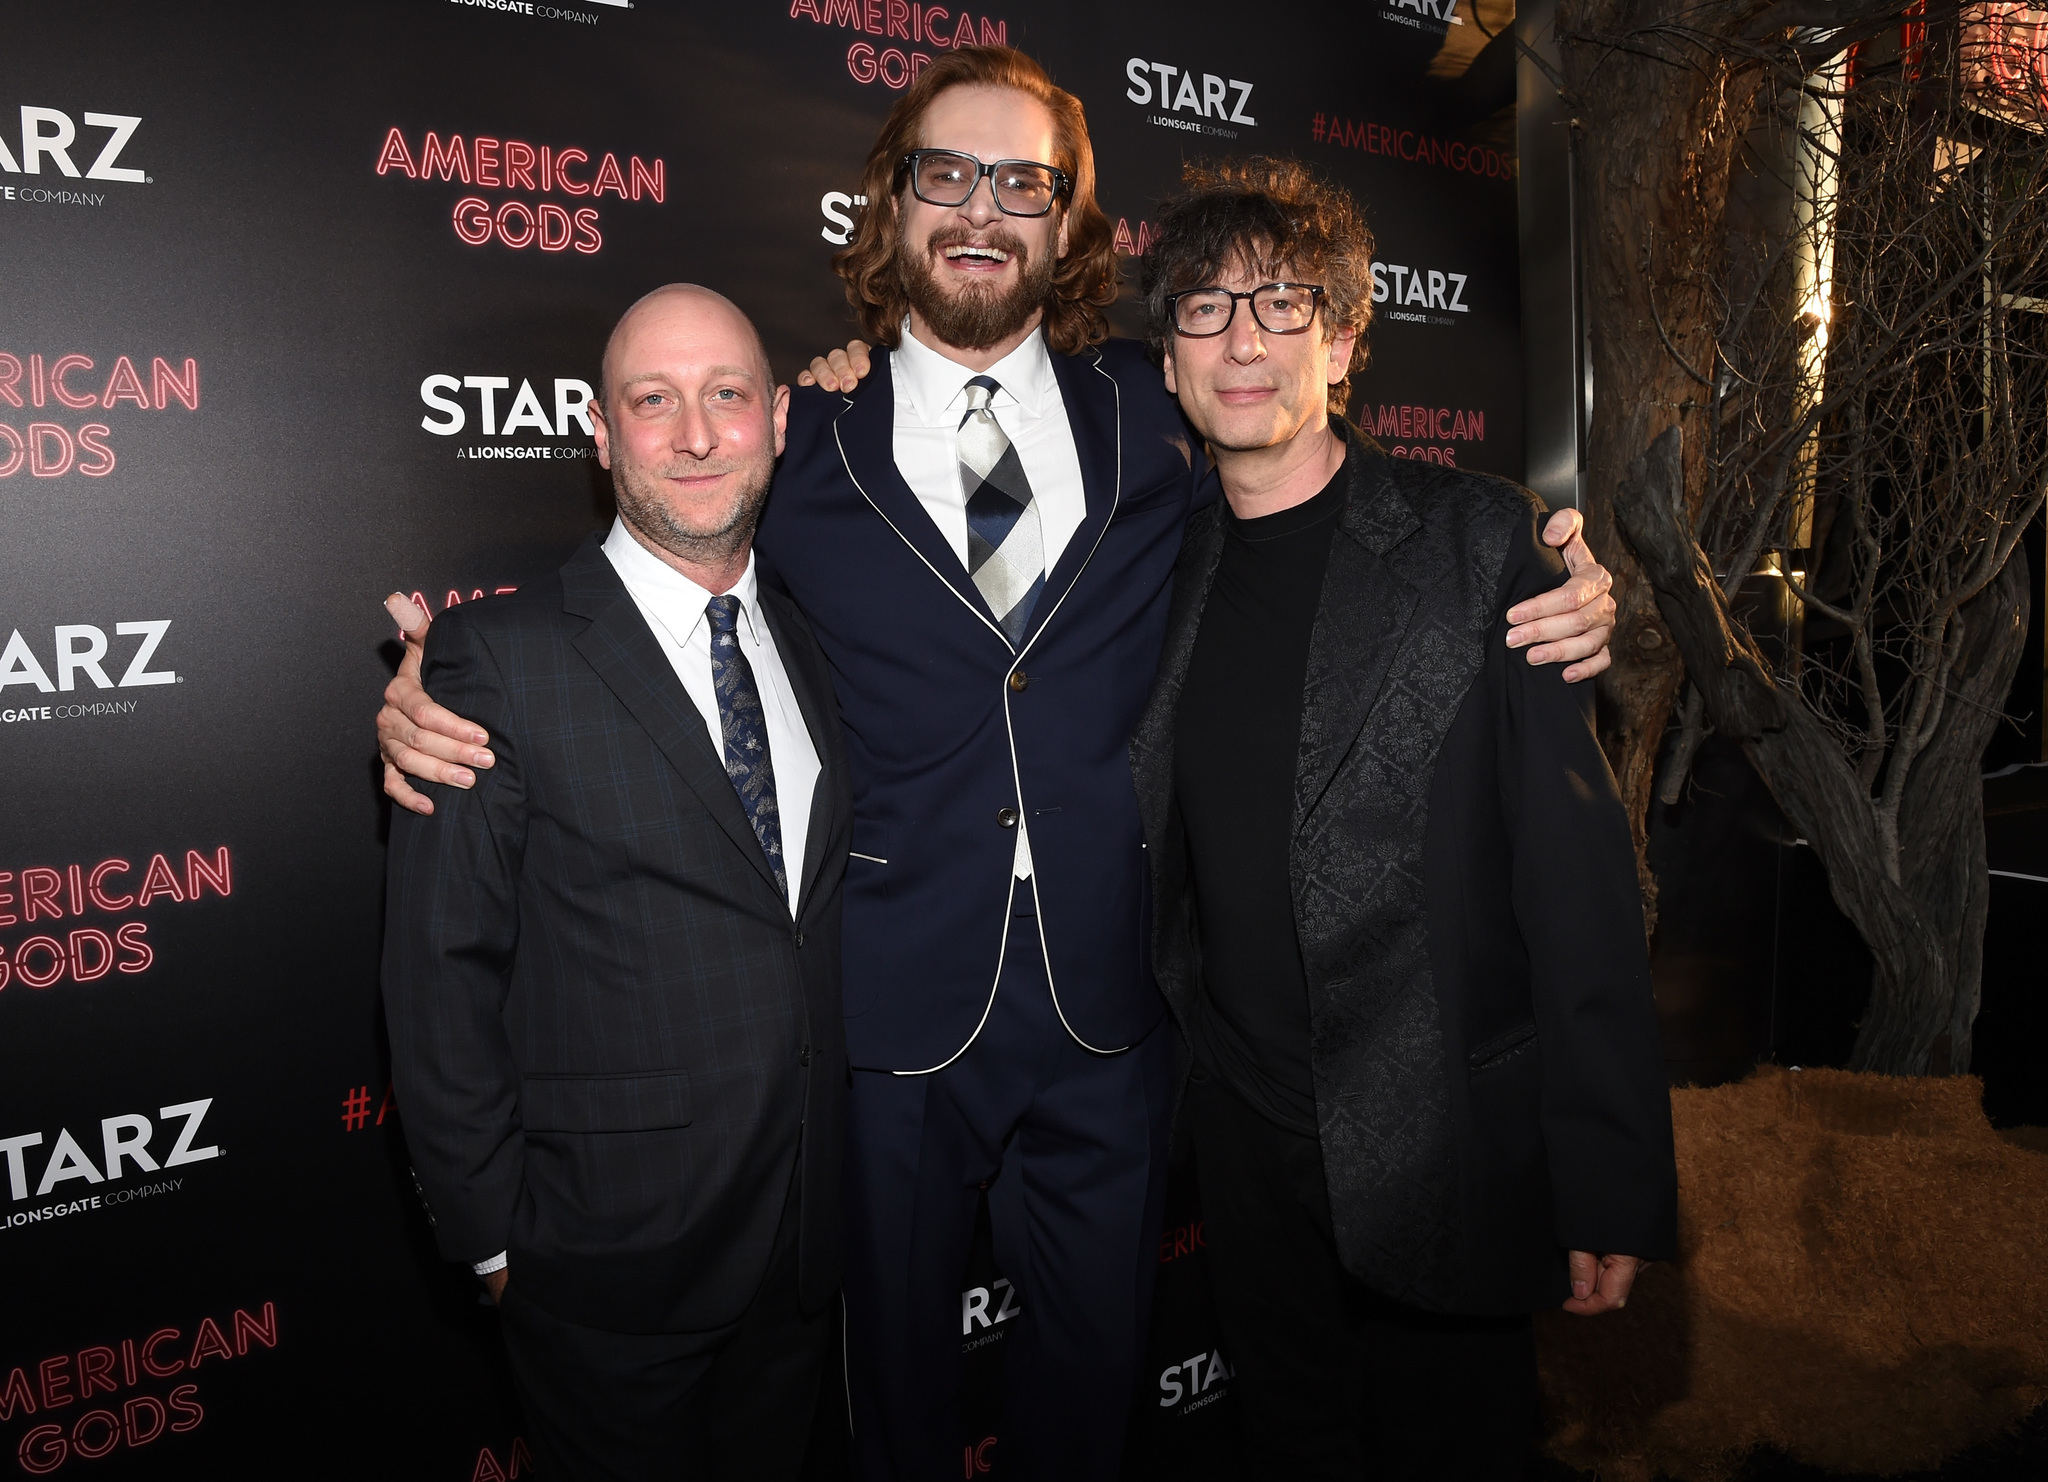 Bryan Fuller, Neil Gaiman, and Michael Green at an event for American Gods (2017)